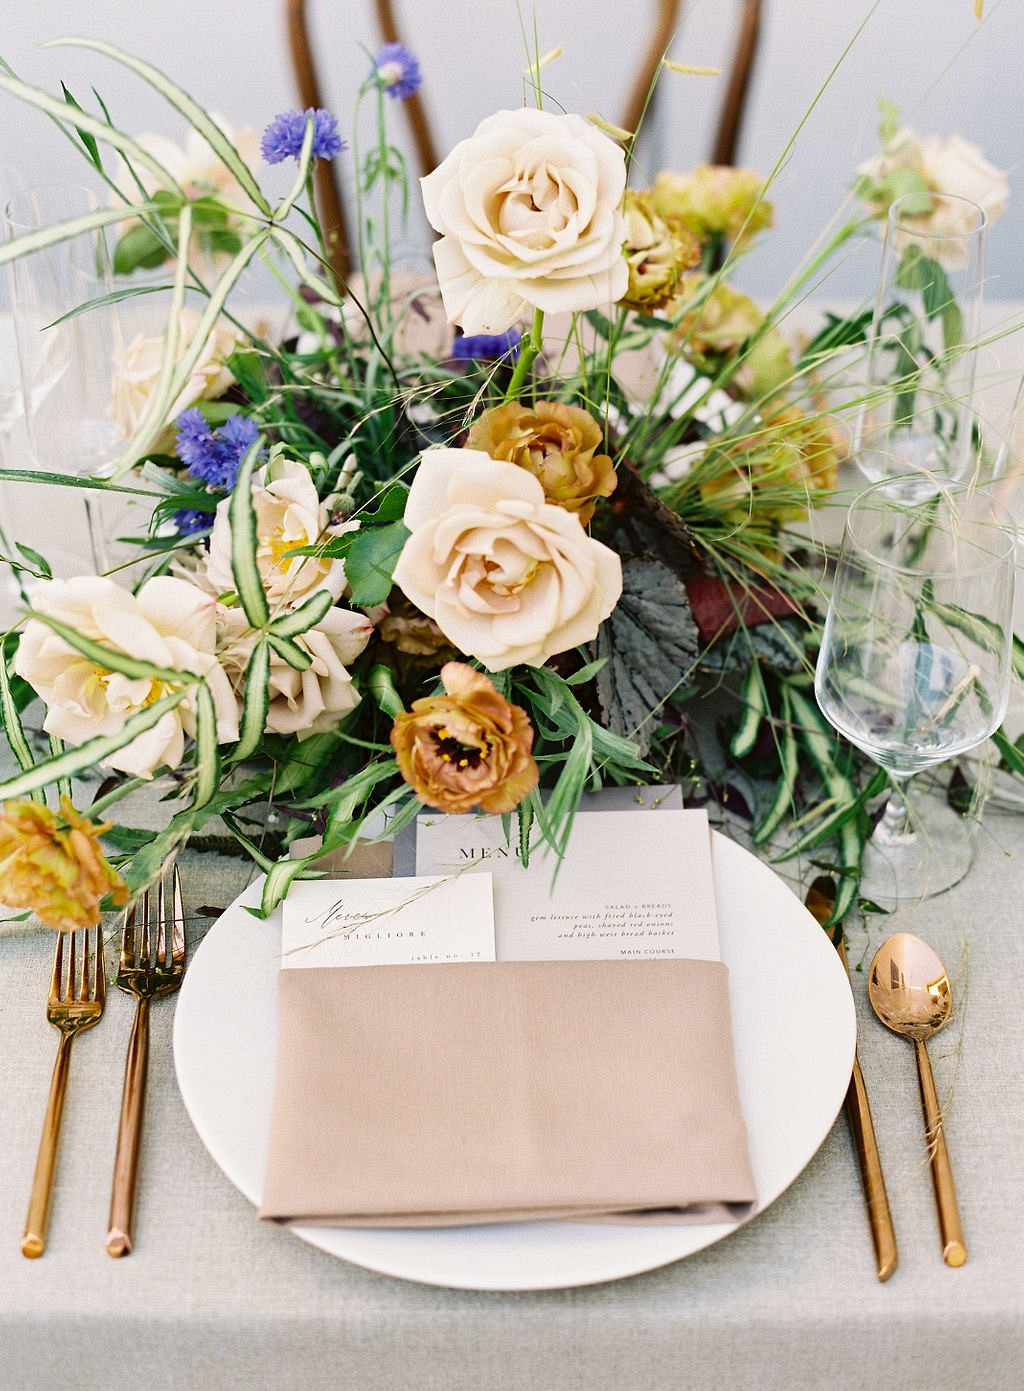 Colbalt Blue and Grasses Make This a Modern Wedding Inspiration